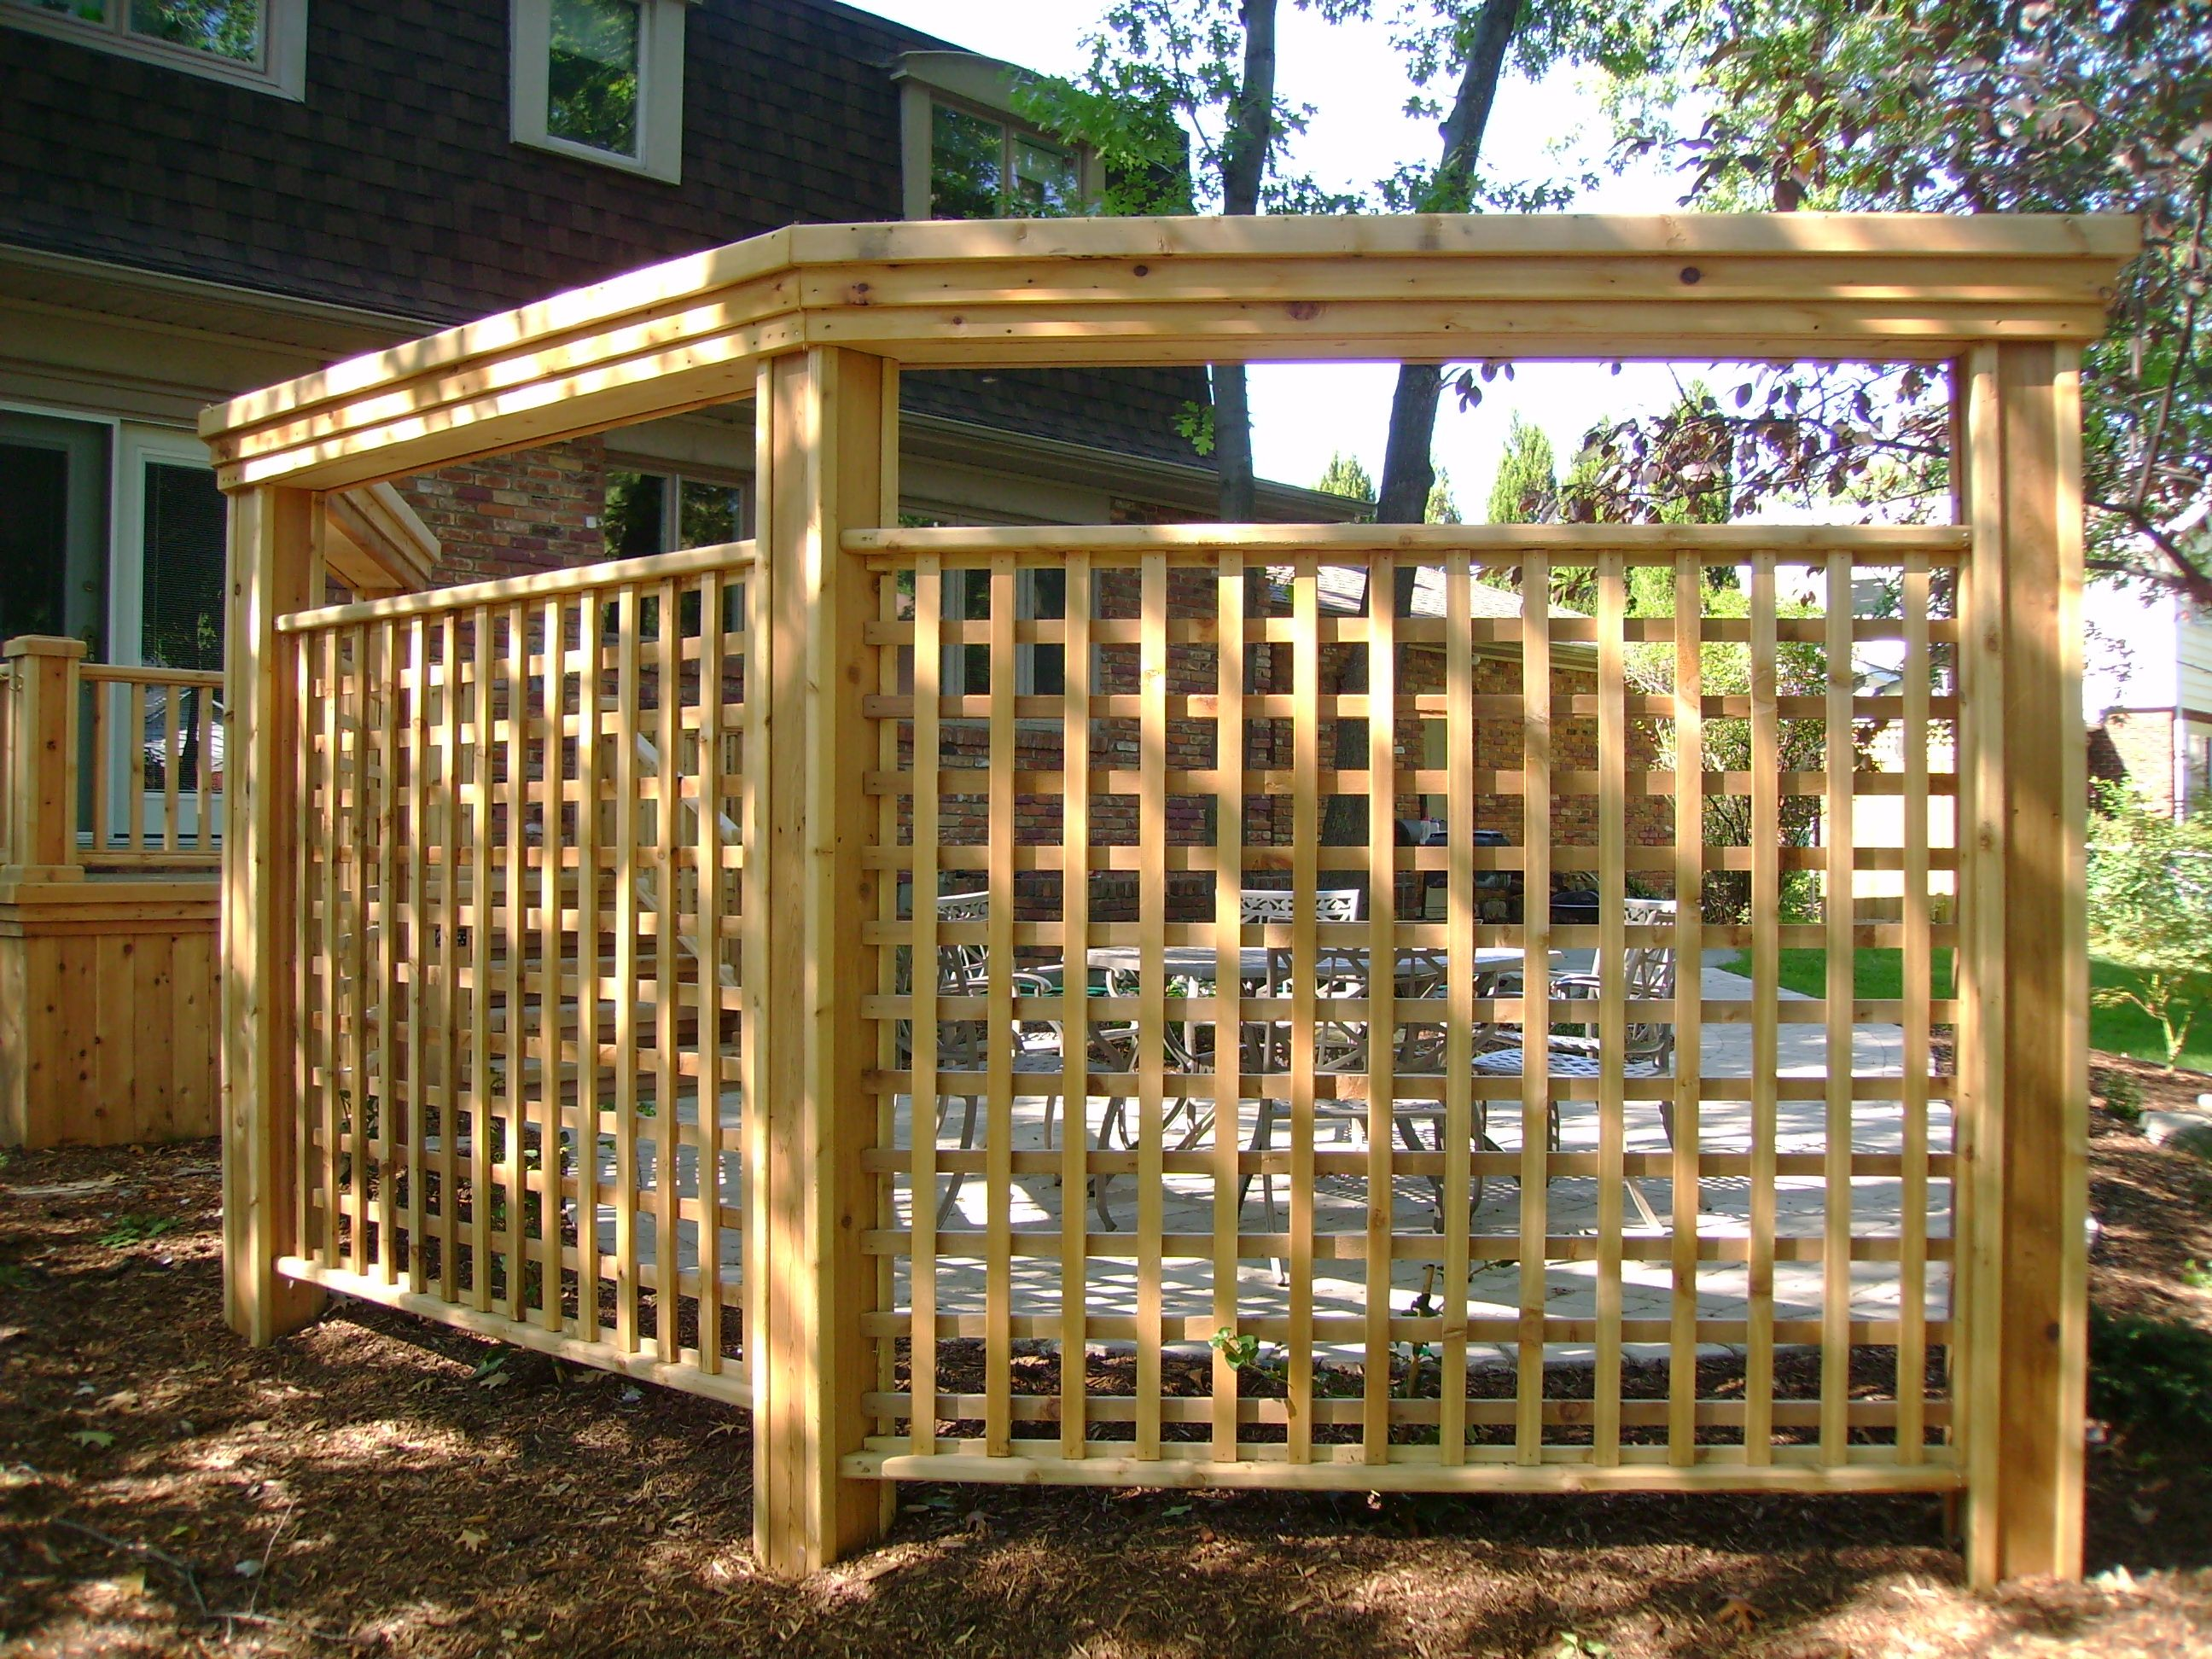 Pin By Lisa Weitzel Weidman On Landscaping Hot Tub Backyard Hot Tub Outdoor Privacy Fence Designs